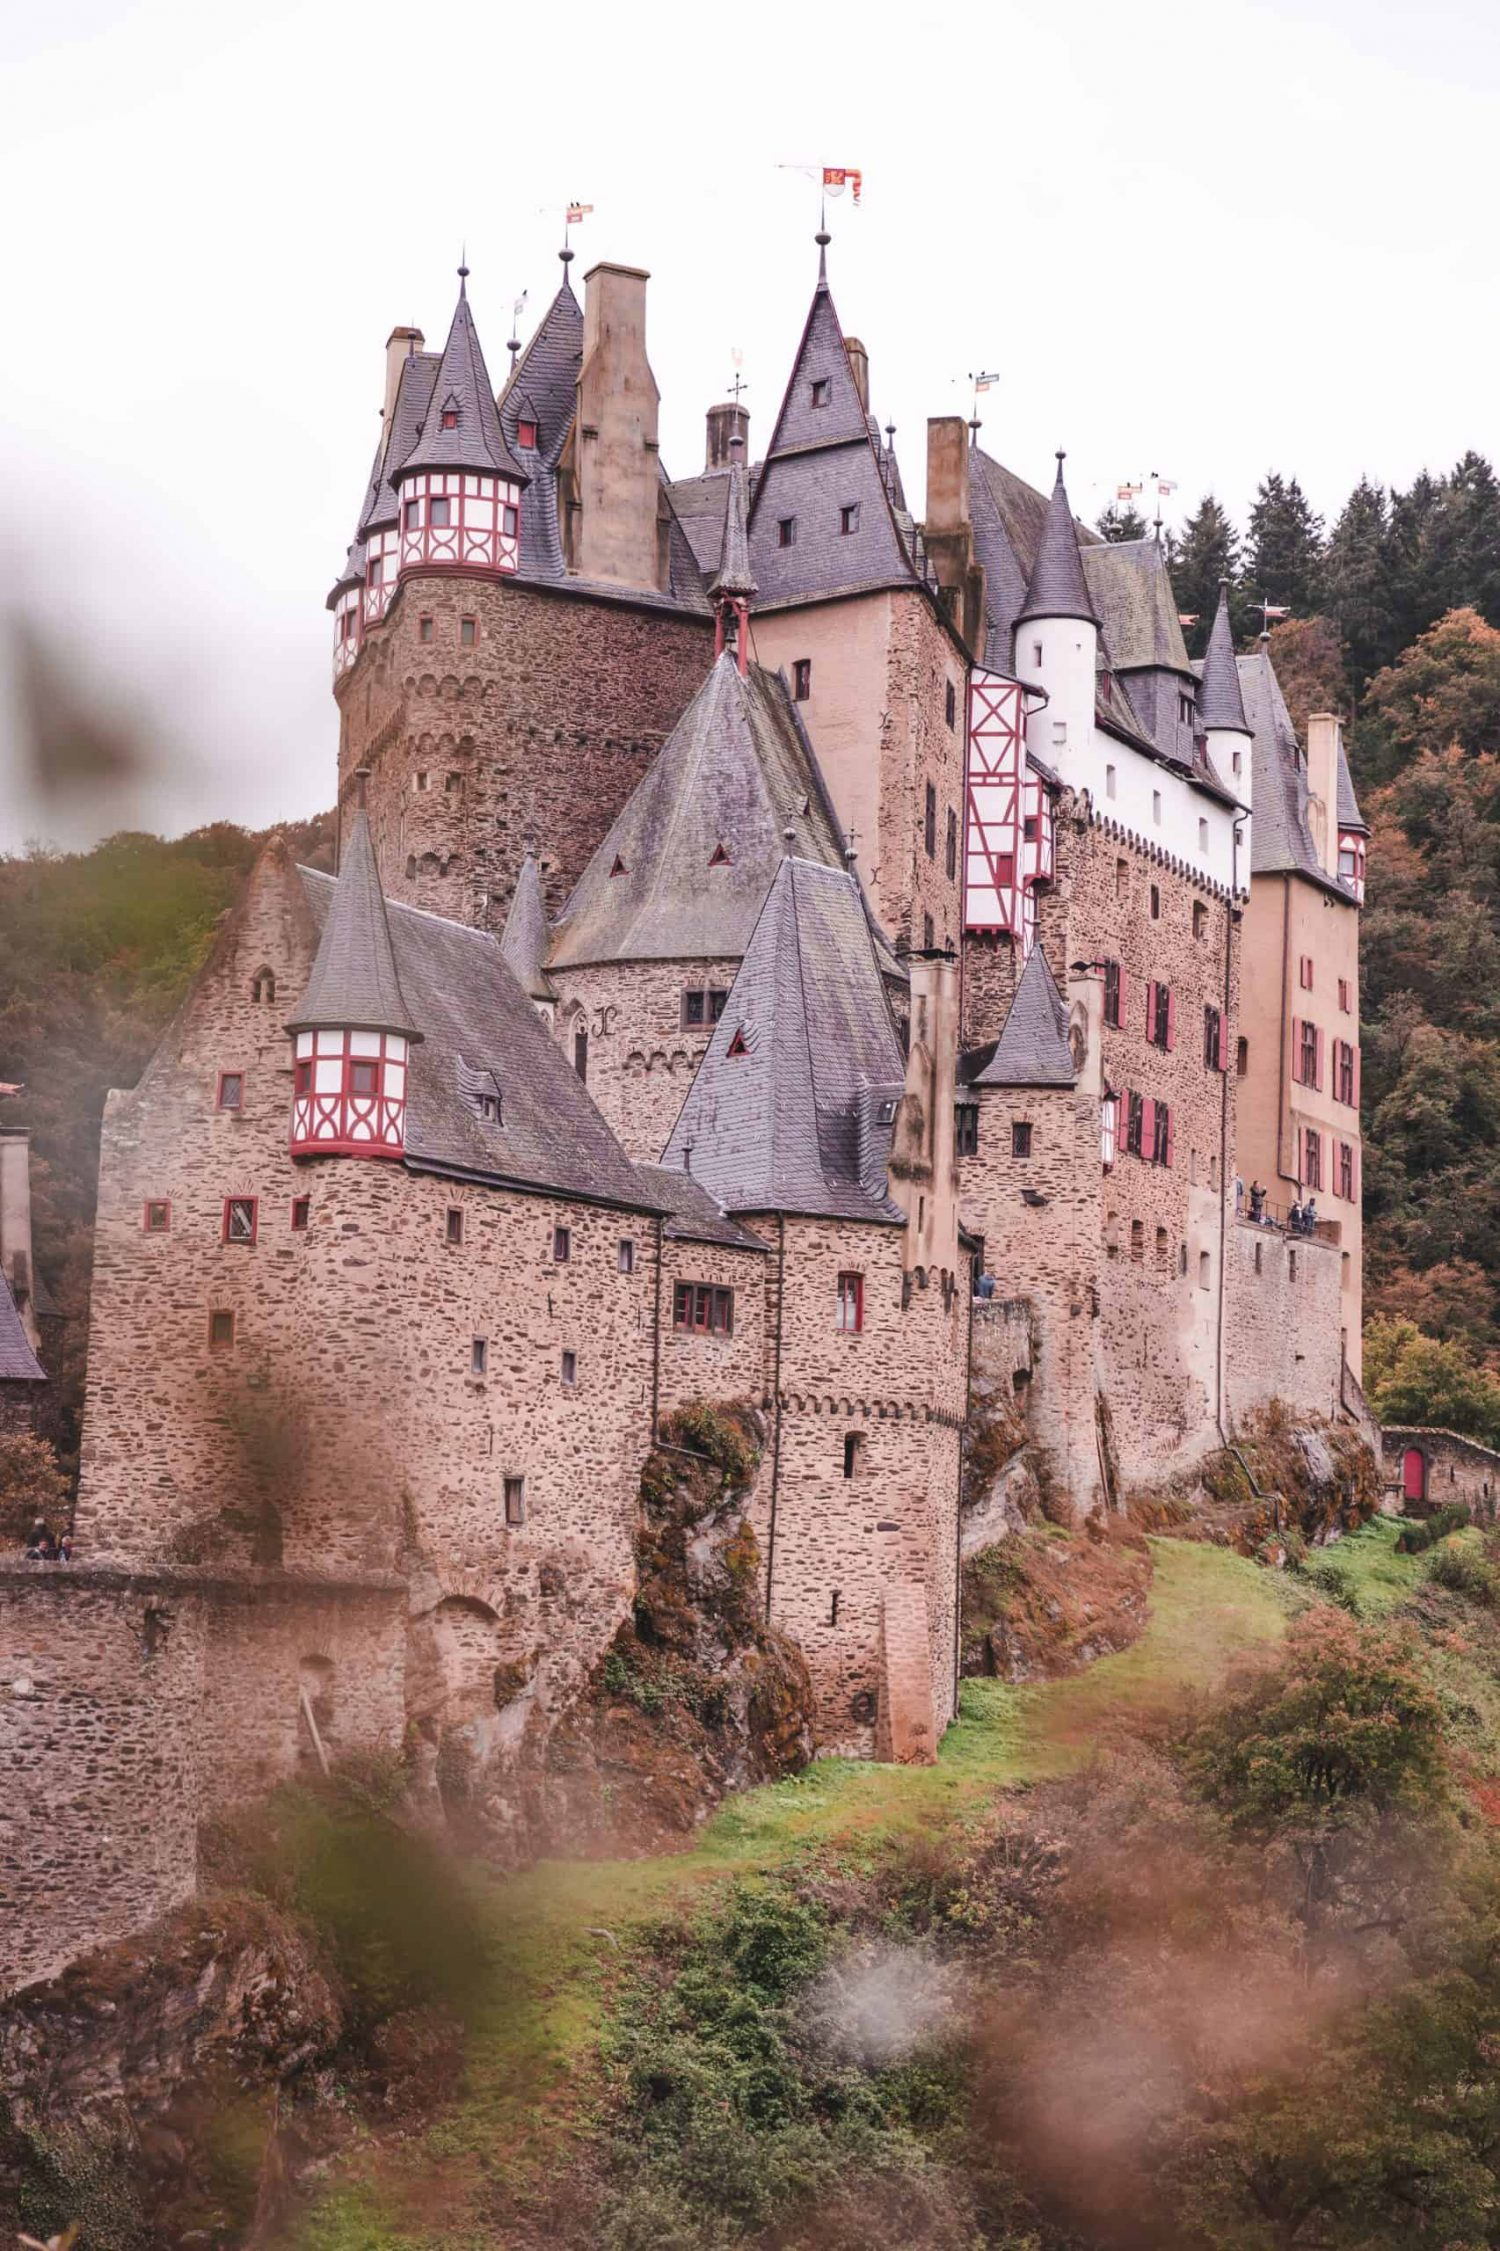 Eltz Castle in Germany is a great place to go in 2020!